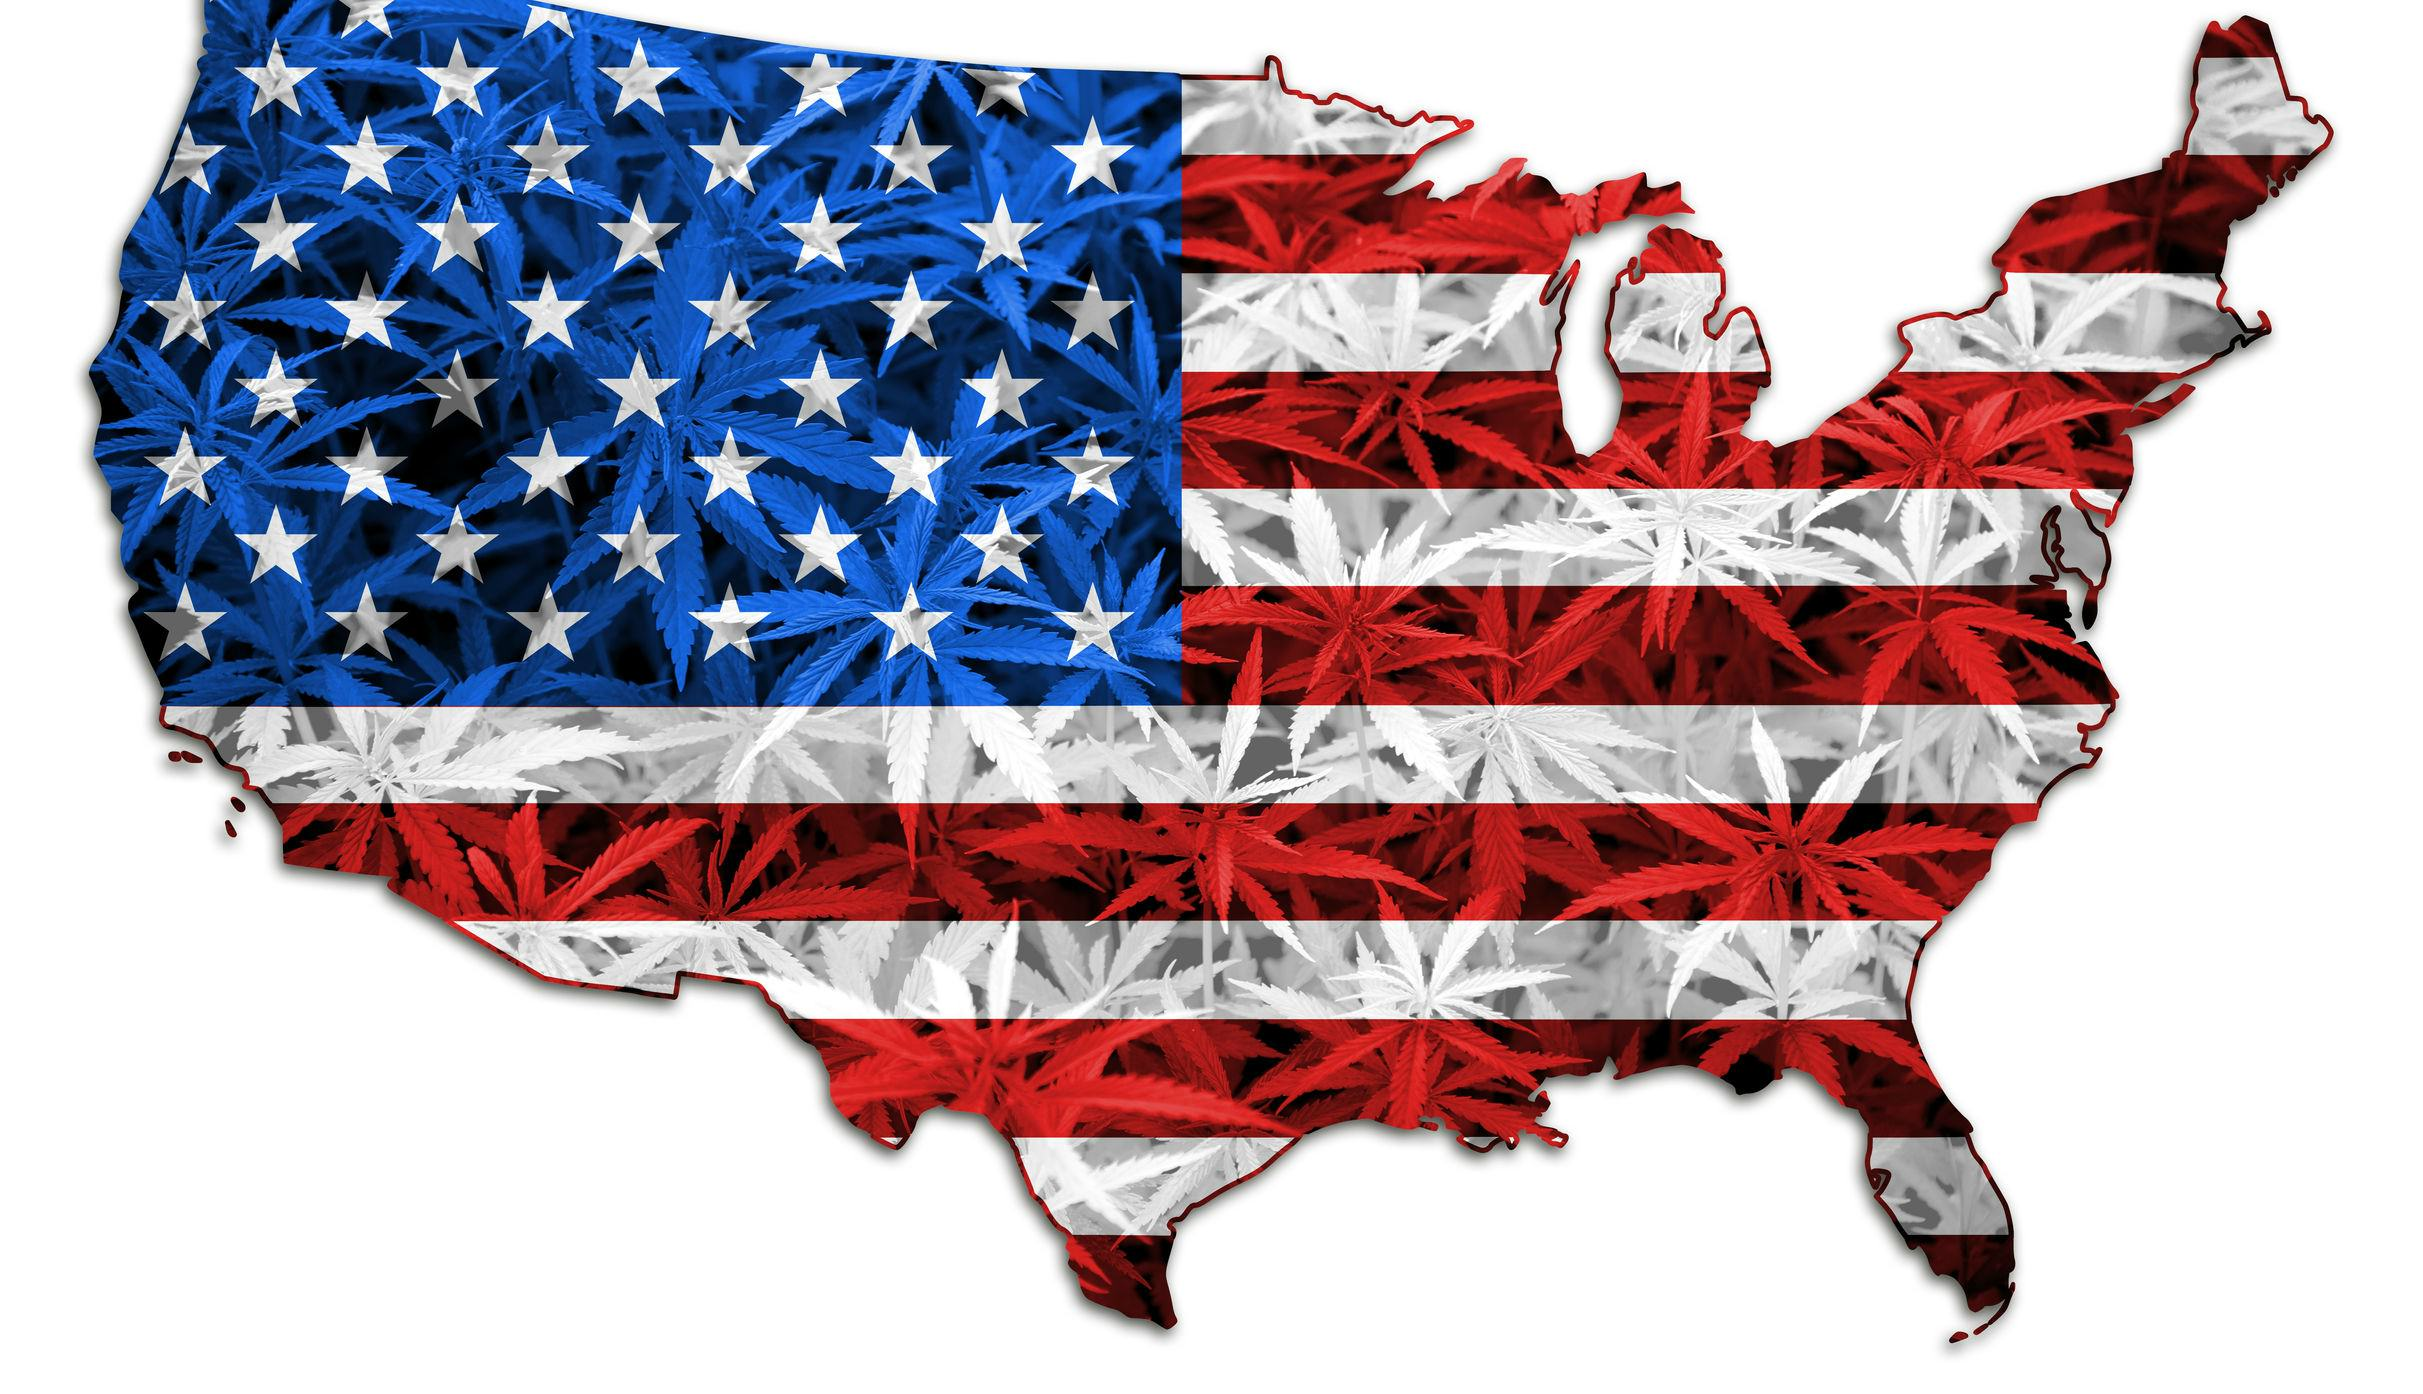 , Industry insiders, state officials in recreational cannabis markets vow to stay the course